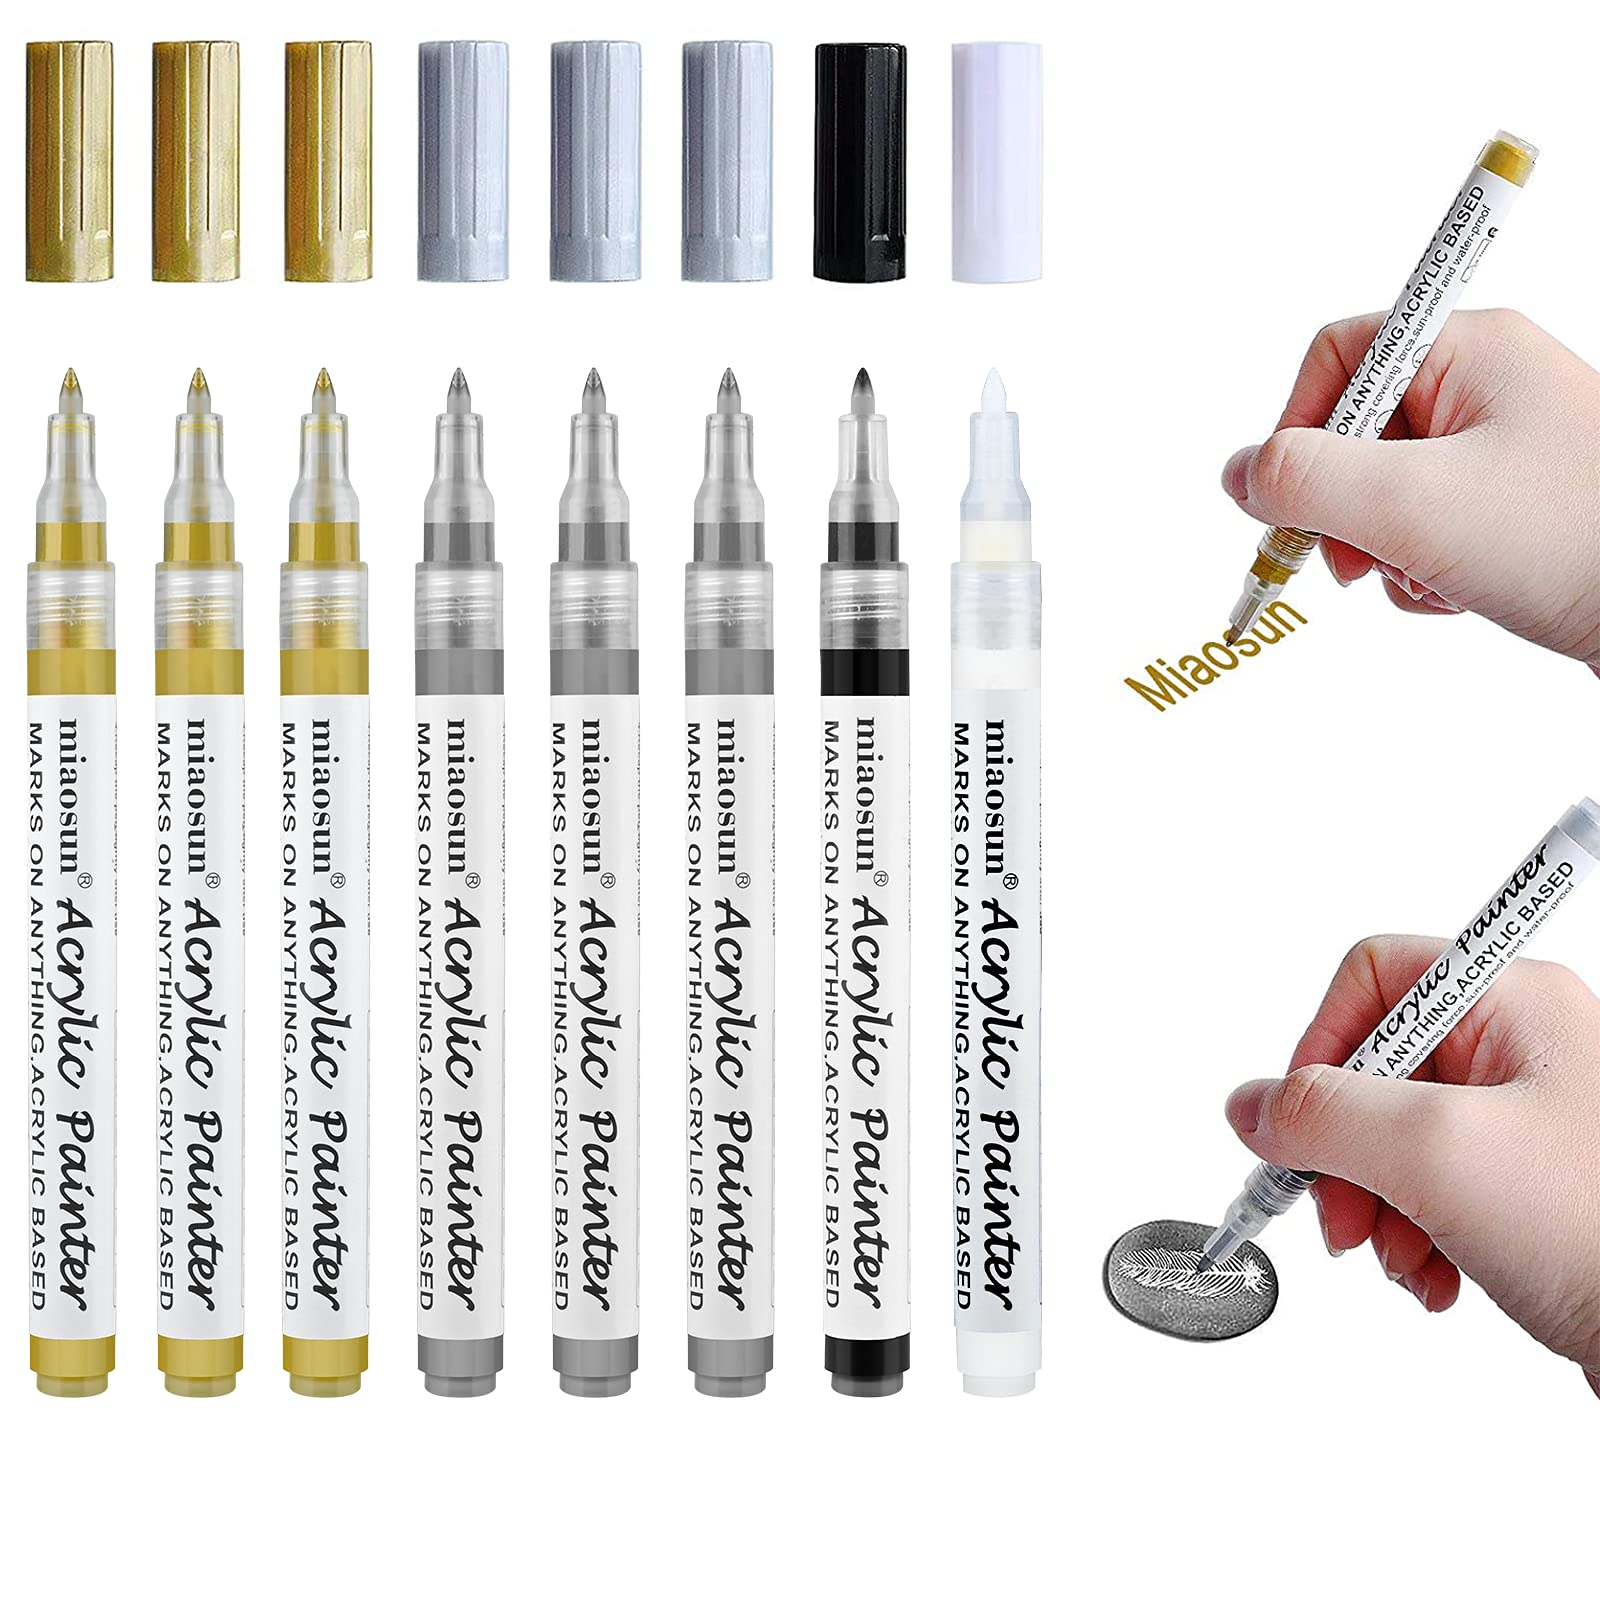 Acrylic Paint Pens,8 Pack 0.7mm Gold and Silver Metallic Permanent Markers for Wood, Glass, Metal and Ceramic - Water Based by miaosun(3 Gold 3 Silver 1Black 1White)